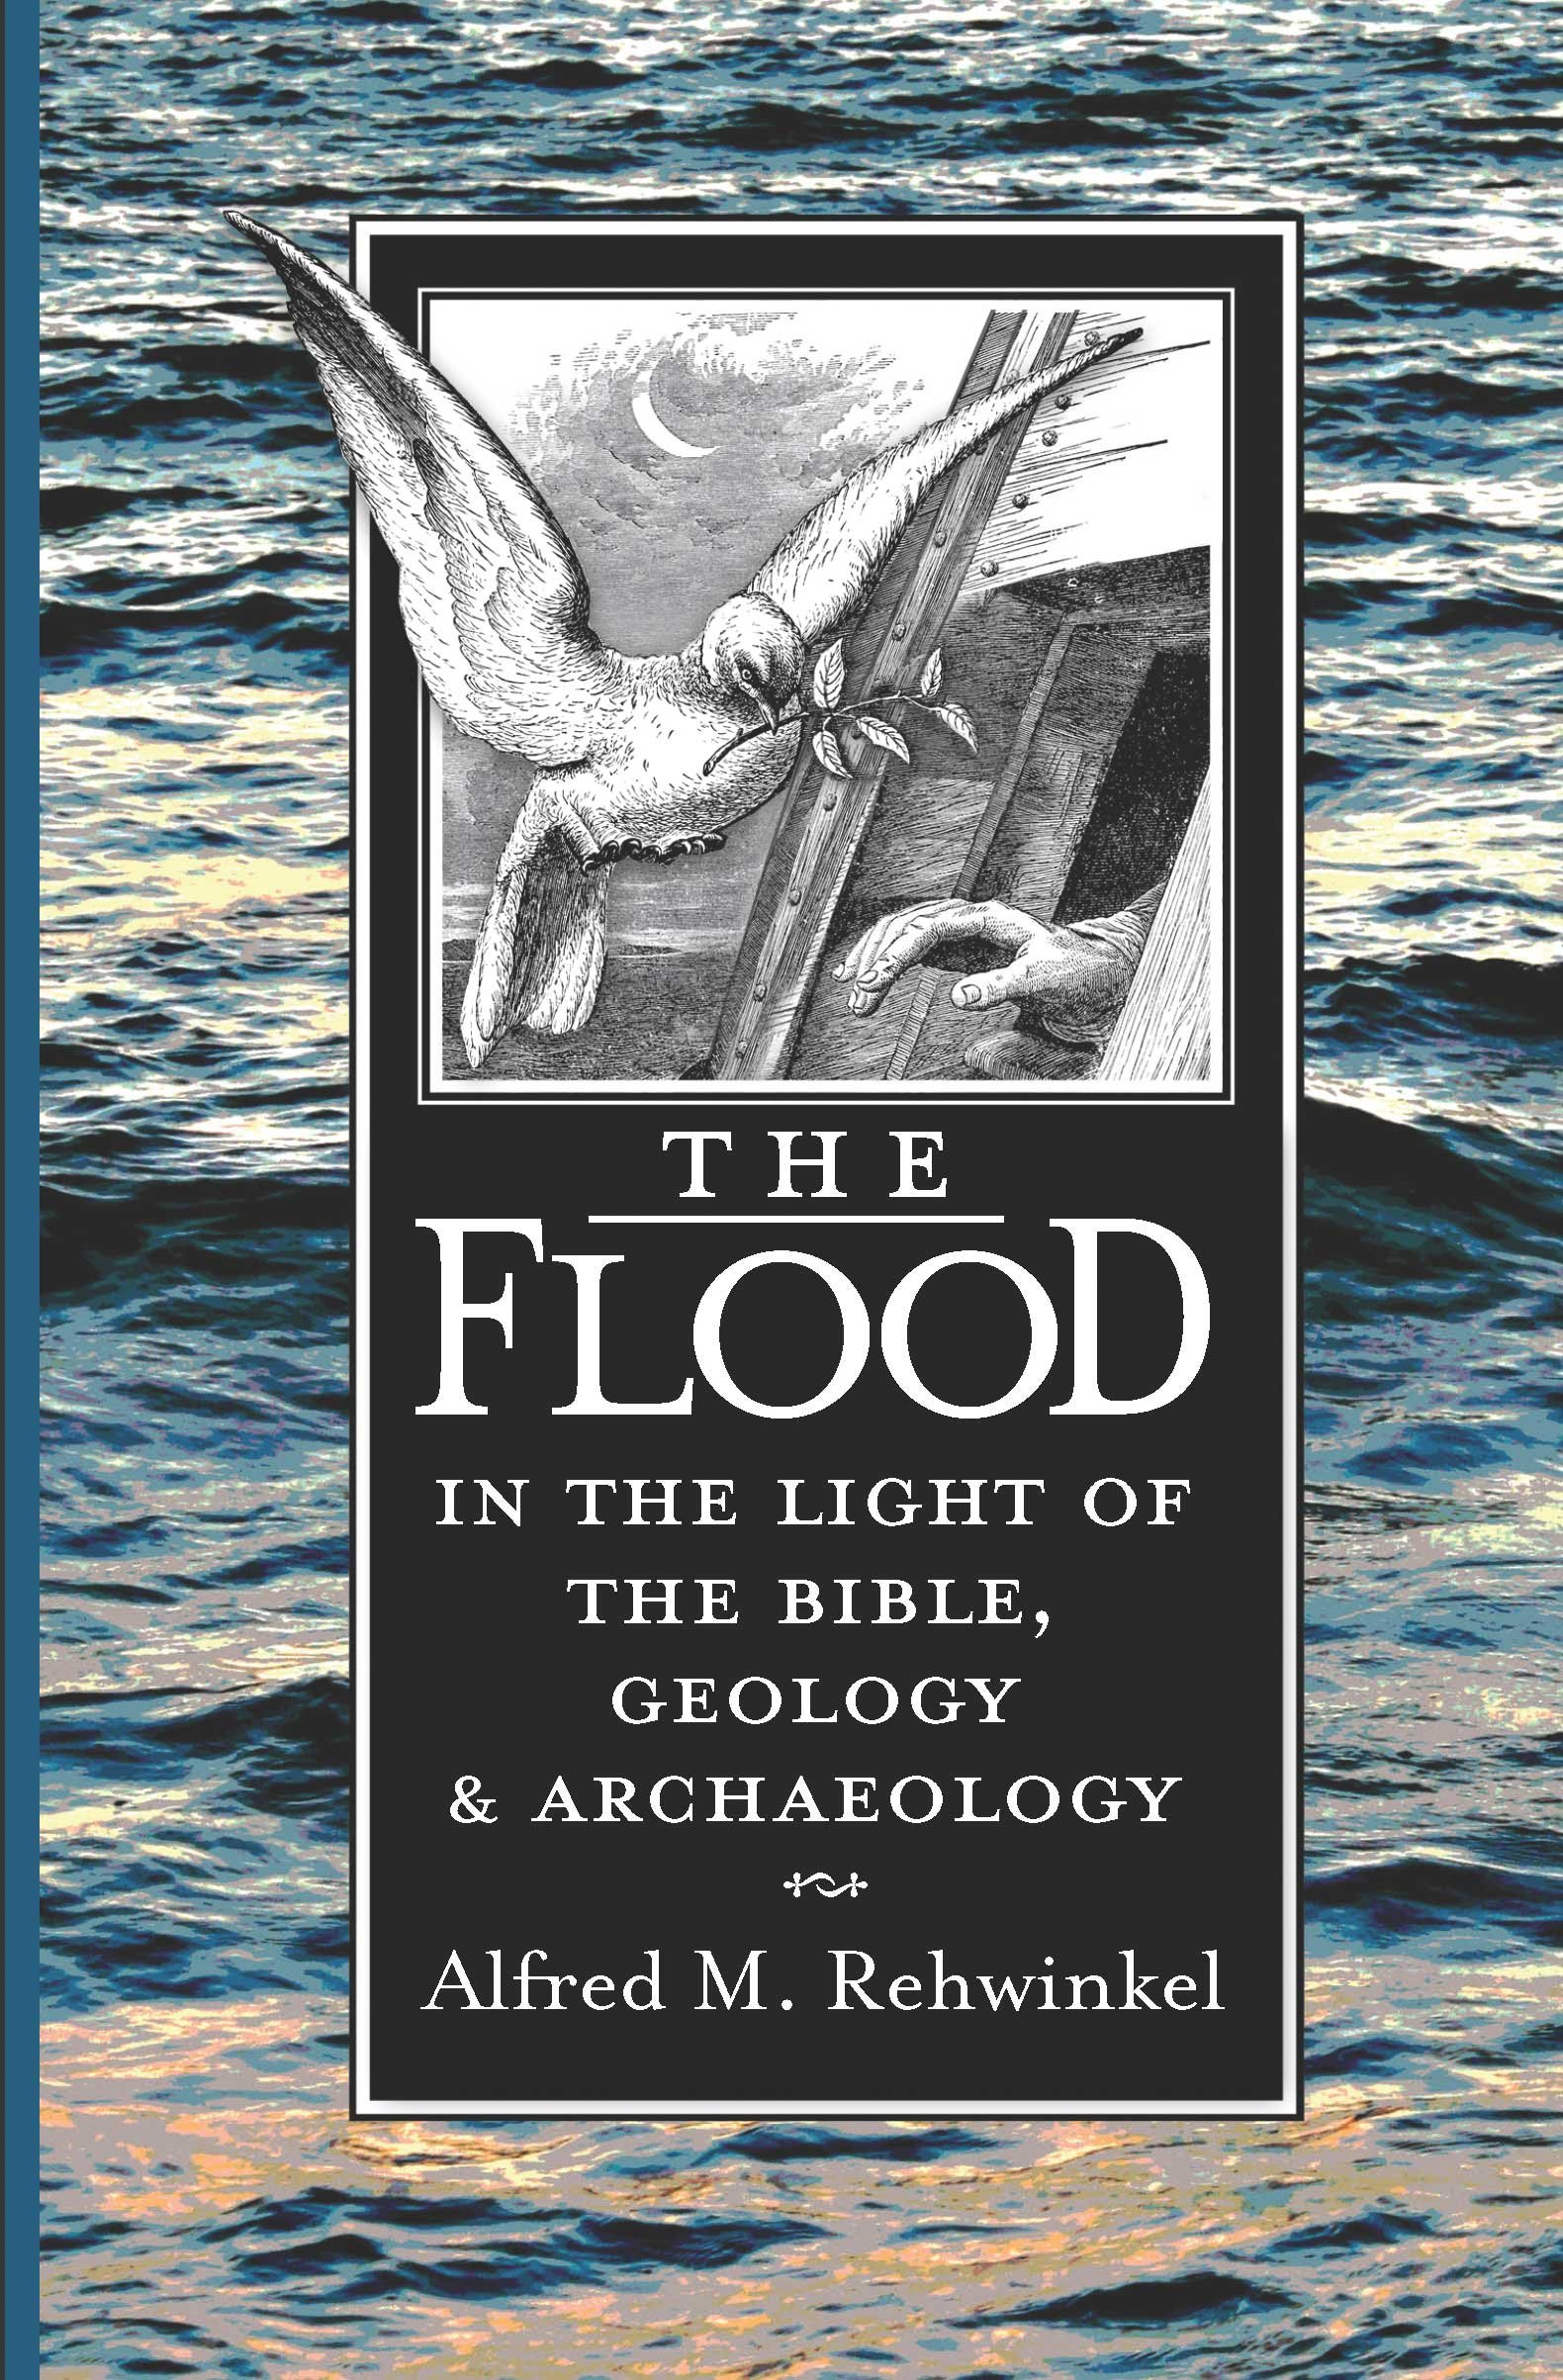 Amazon: The Flood: In The Light Of The Bible, Geology, And Archaeology  (9780570031833): Alfred Rehwinkel: Books